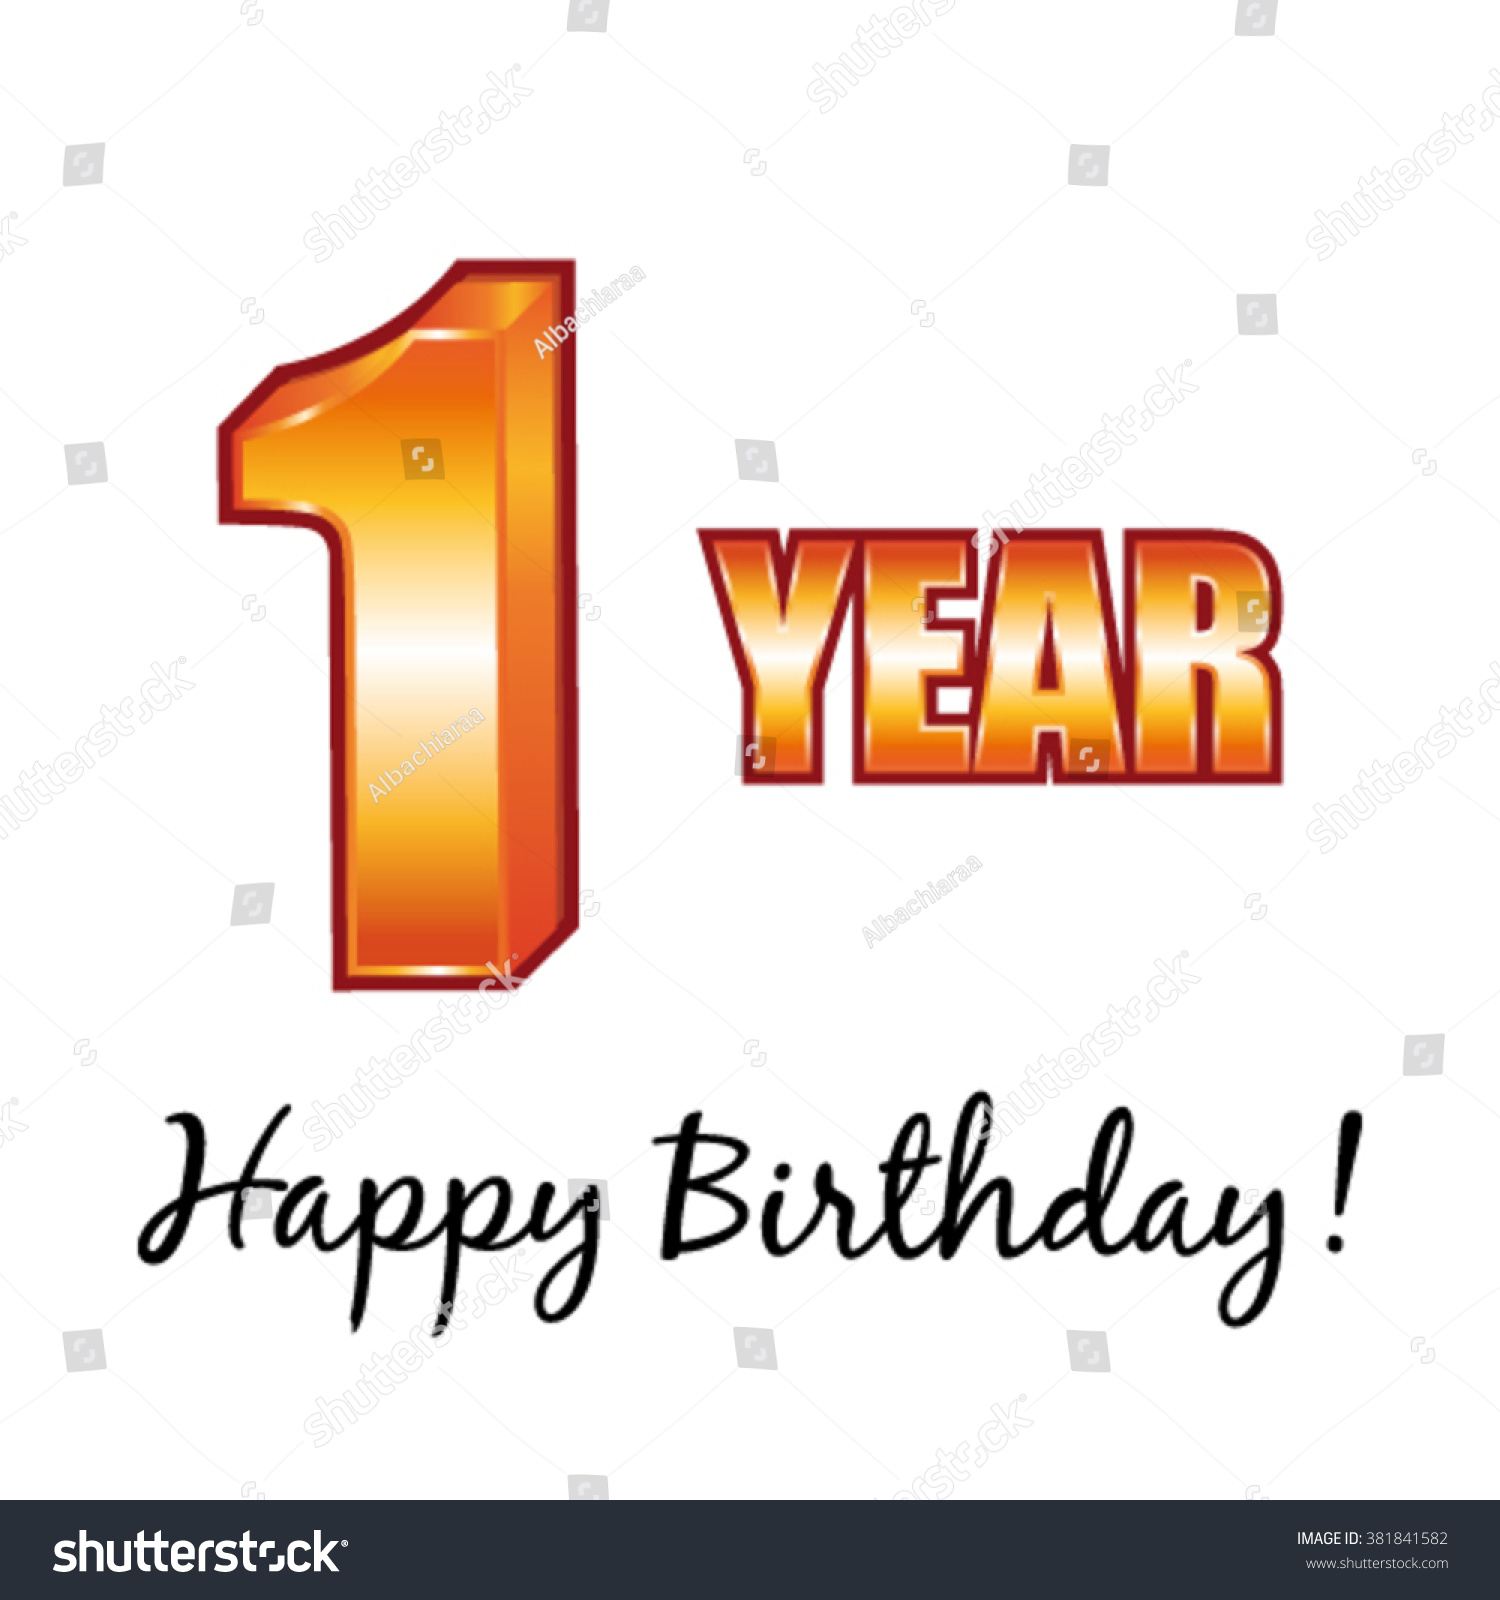 Happy Birthday 1 Year Old Vector Stock Vector Shutterstock